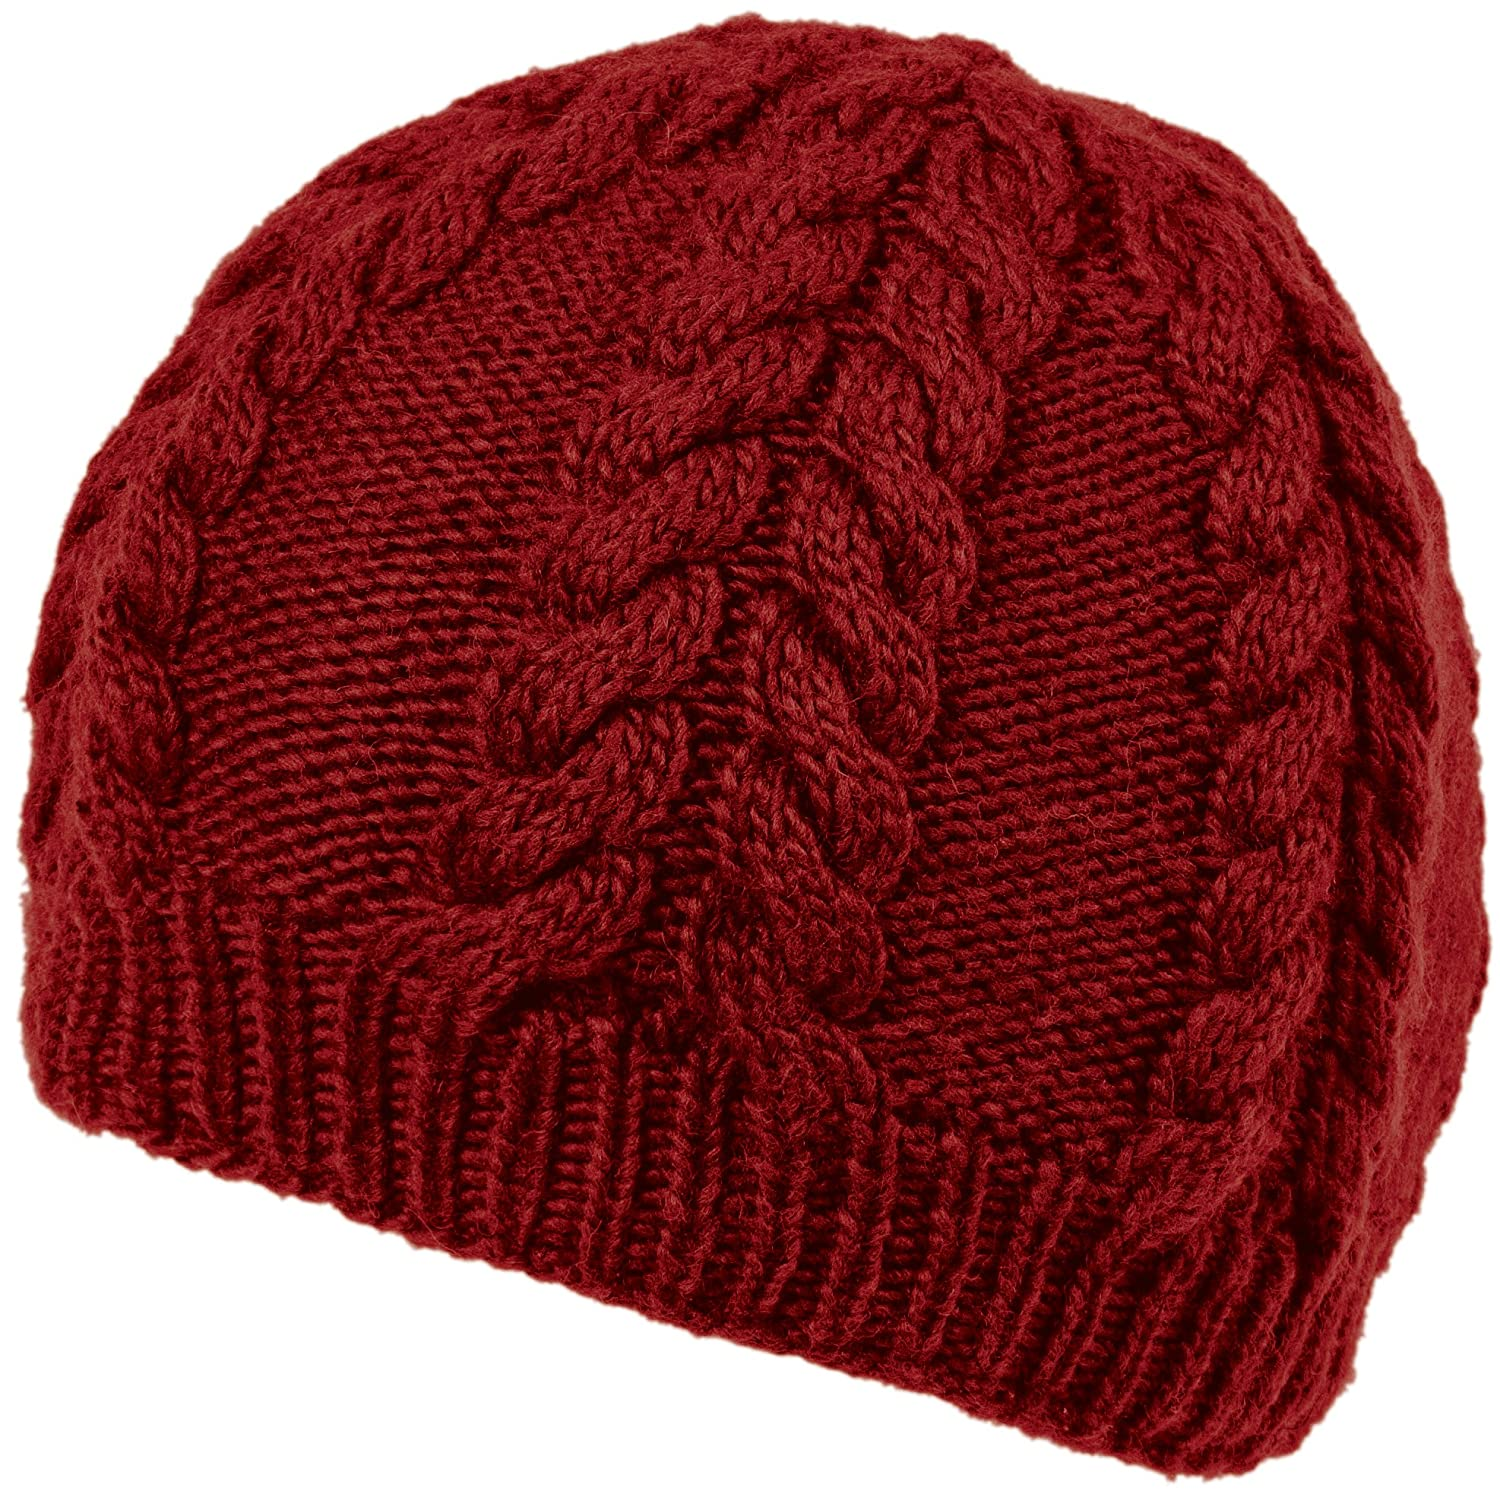 Nirvanna Designs CH413 Soft Wool Cable Beanie with Fleece, Red